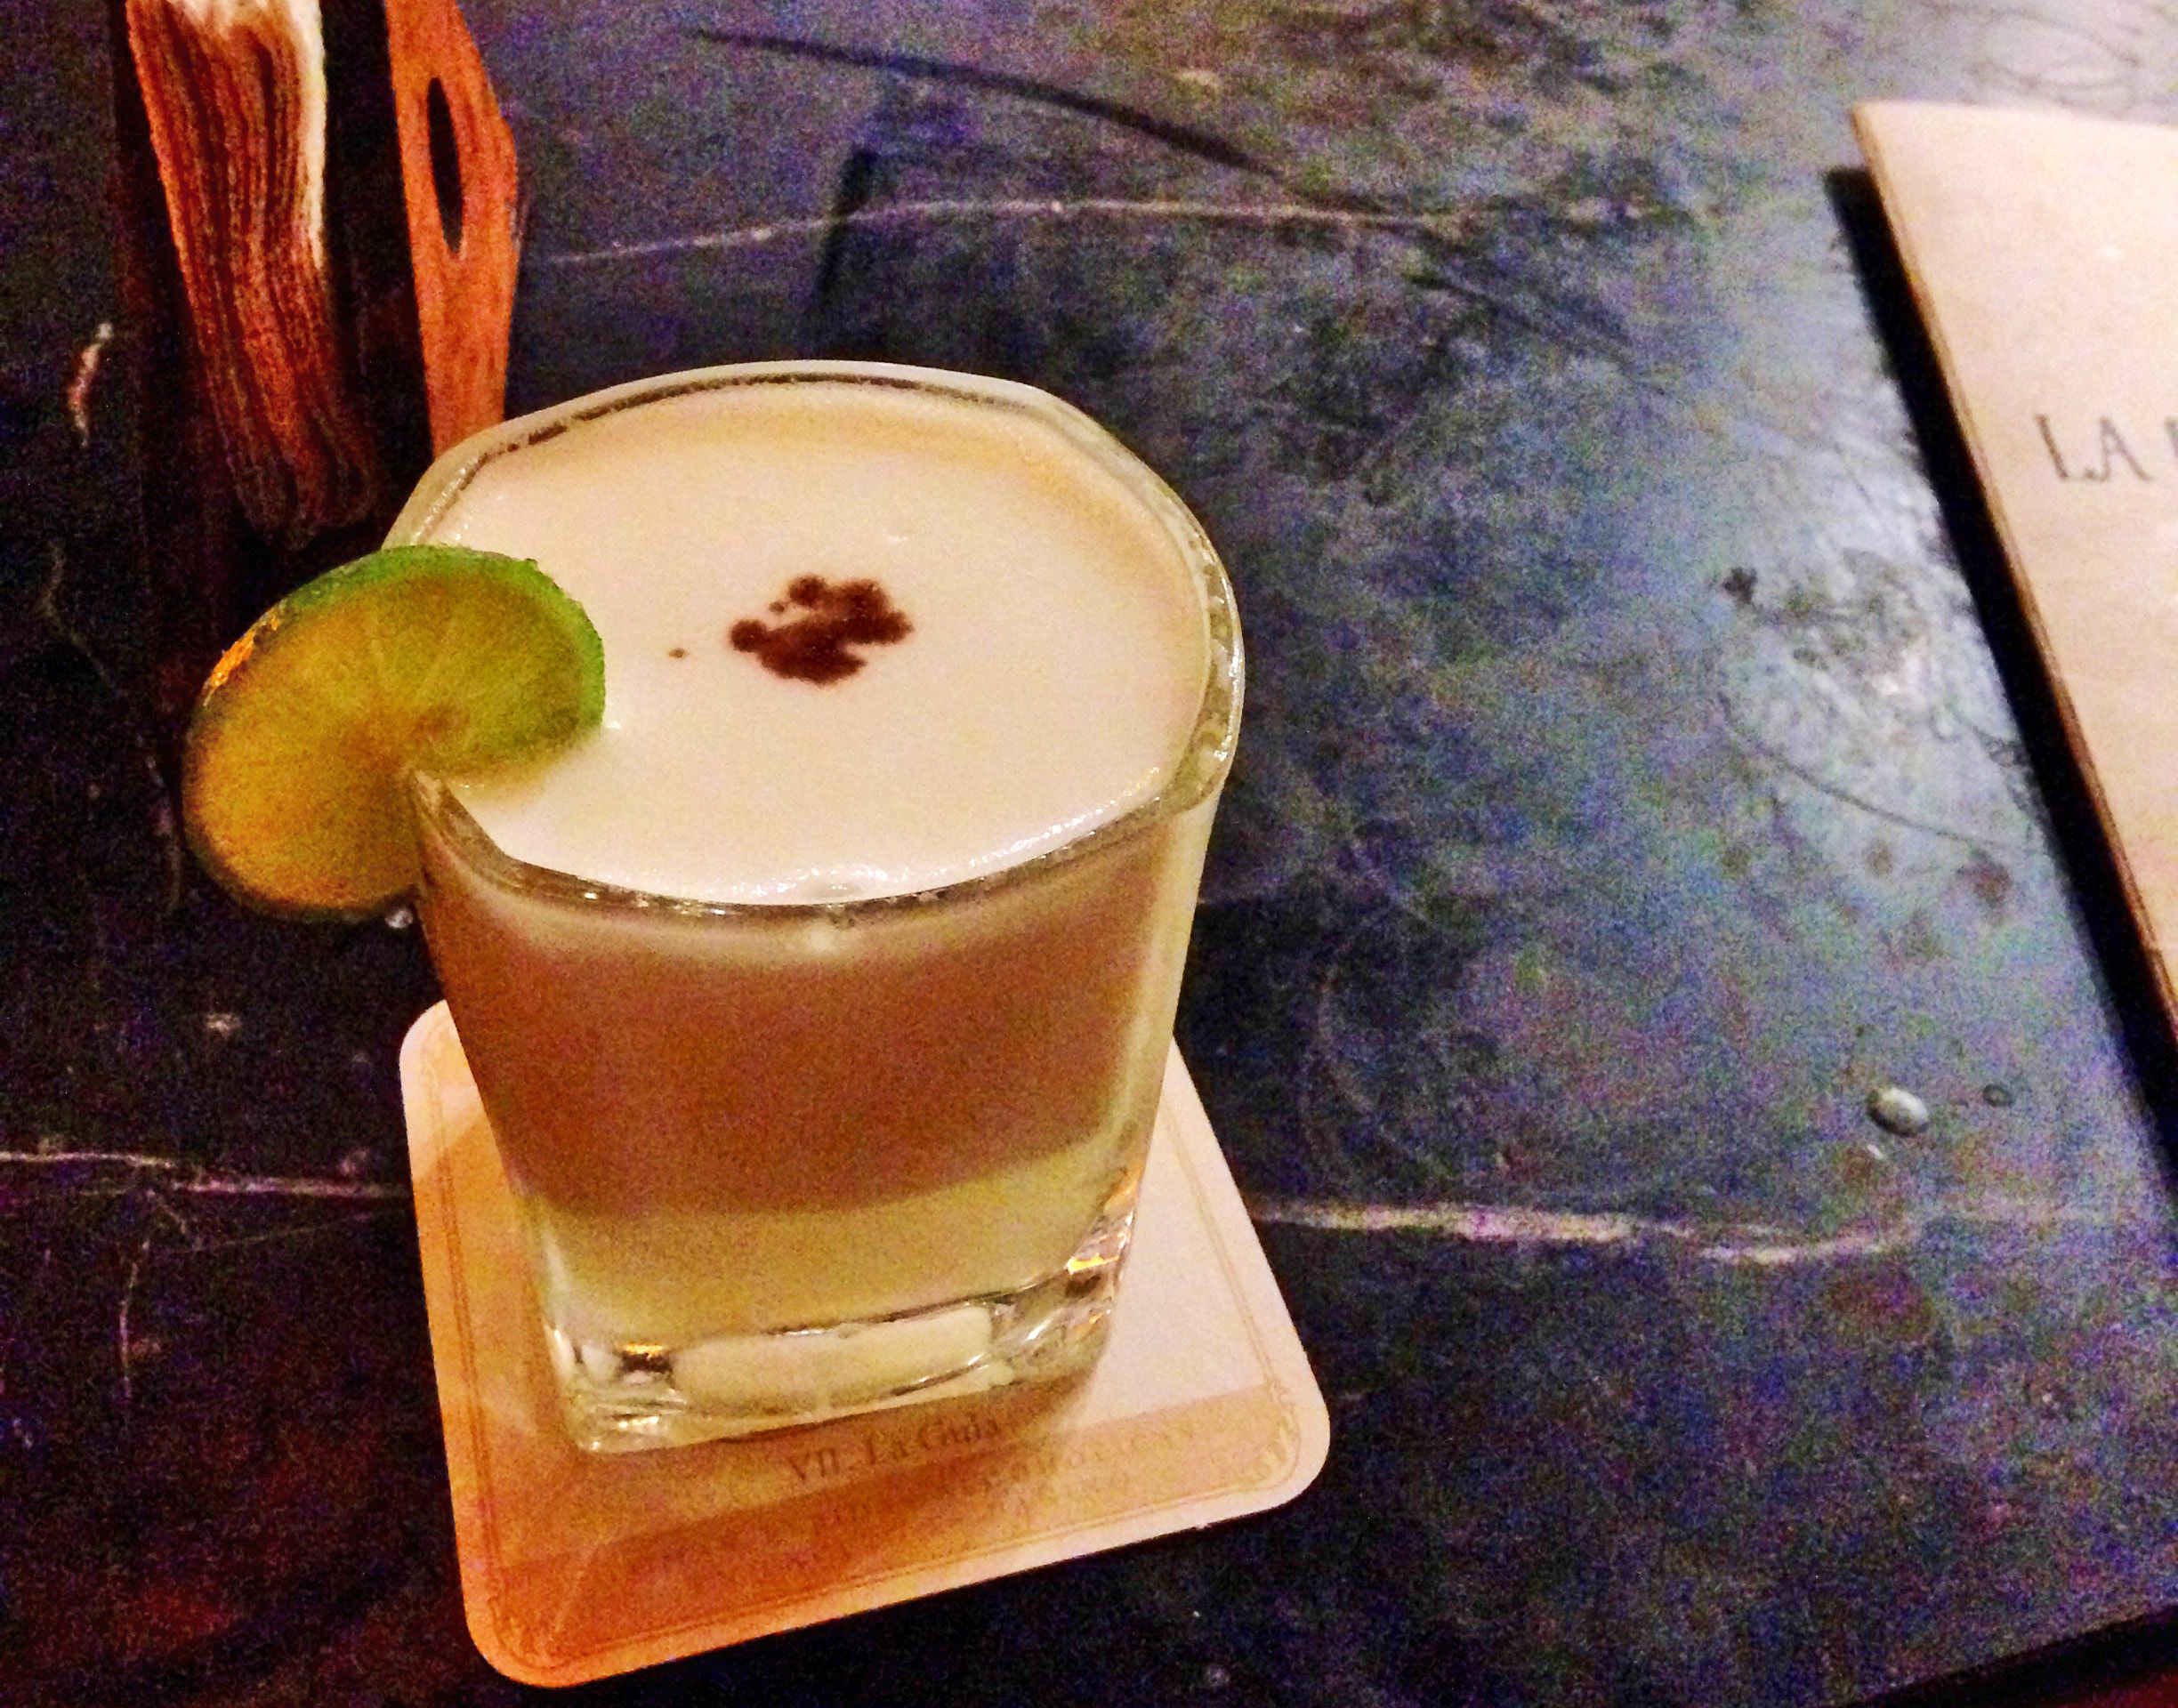 Pisco Sour, barranco